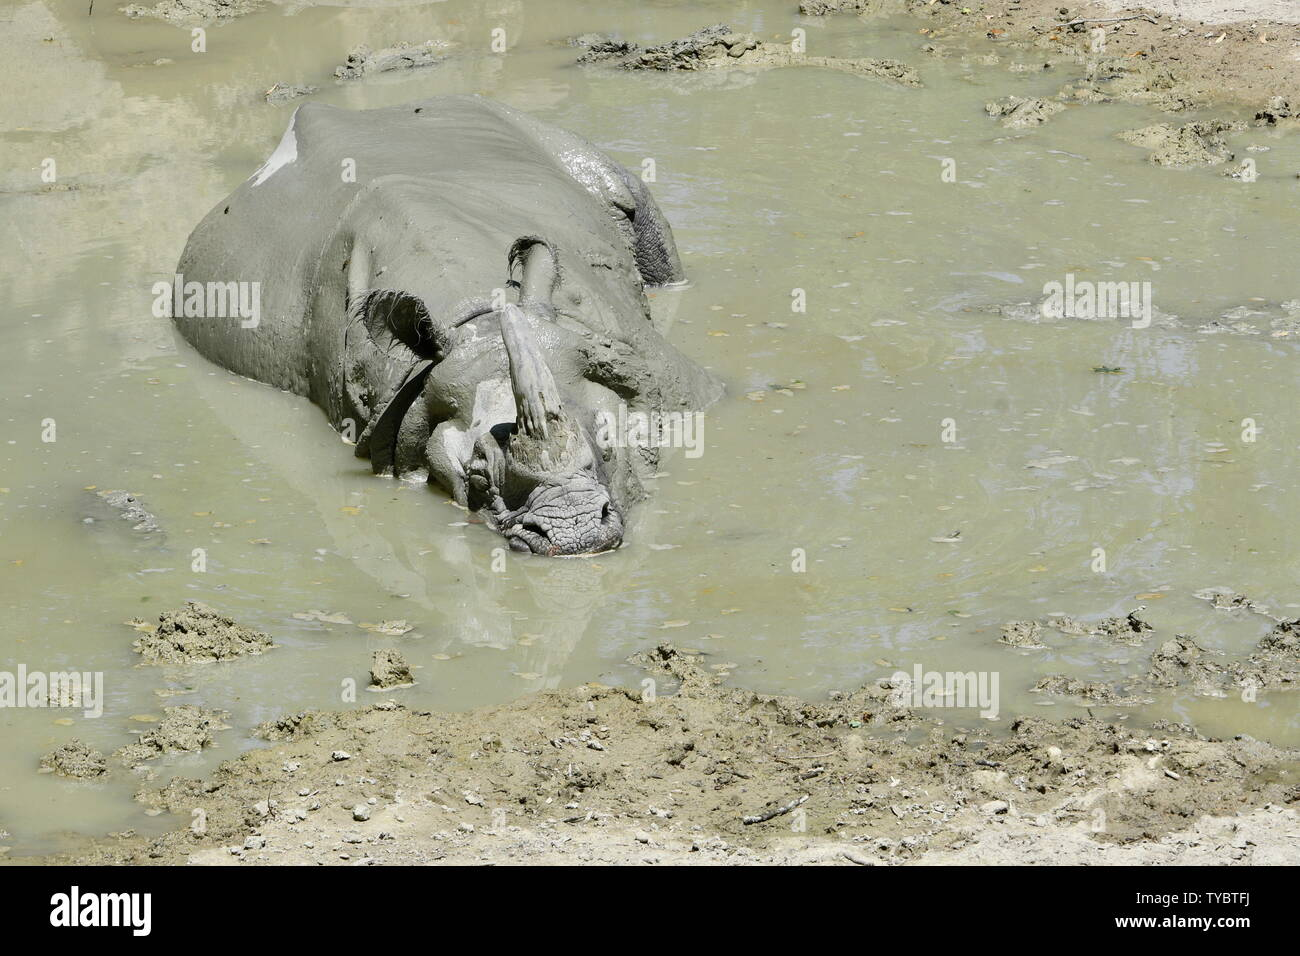 Vienna, Austria. 26th June, 2019. Heatwave in Vienna. Today, it is expected to reach 37 degrees Celsius. The Nepalese rhinoceros in the Tiergarten Schönbrunn manages with a mud bath. Credit: Franz Perc / Alamy Live News Stock Photo